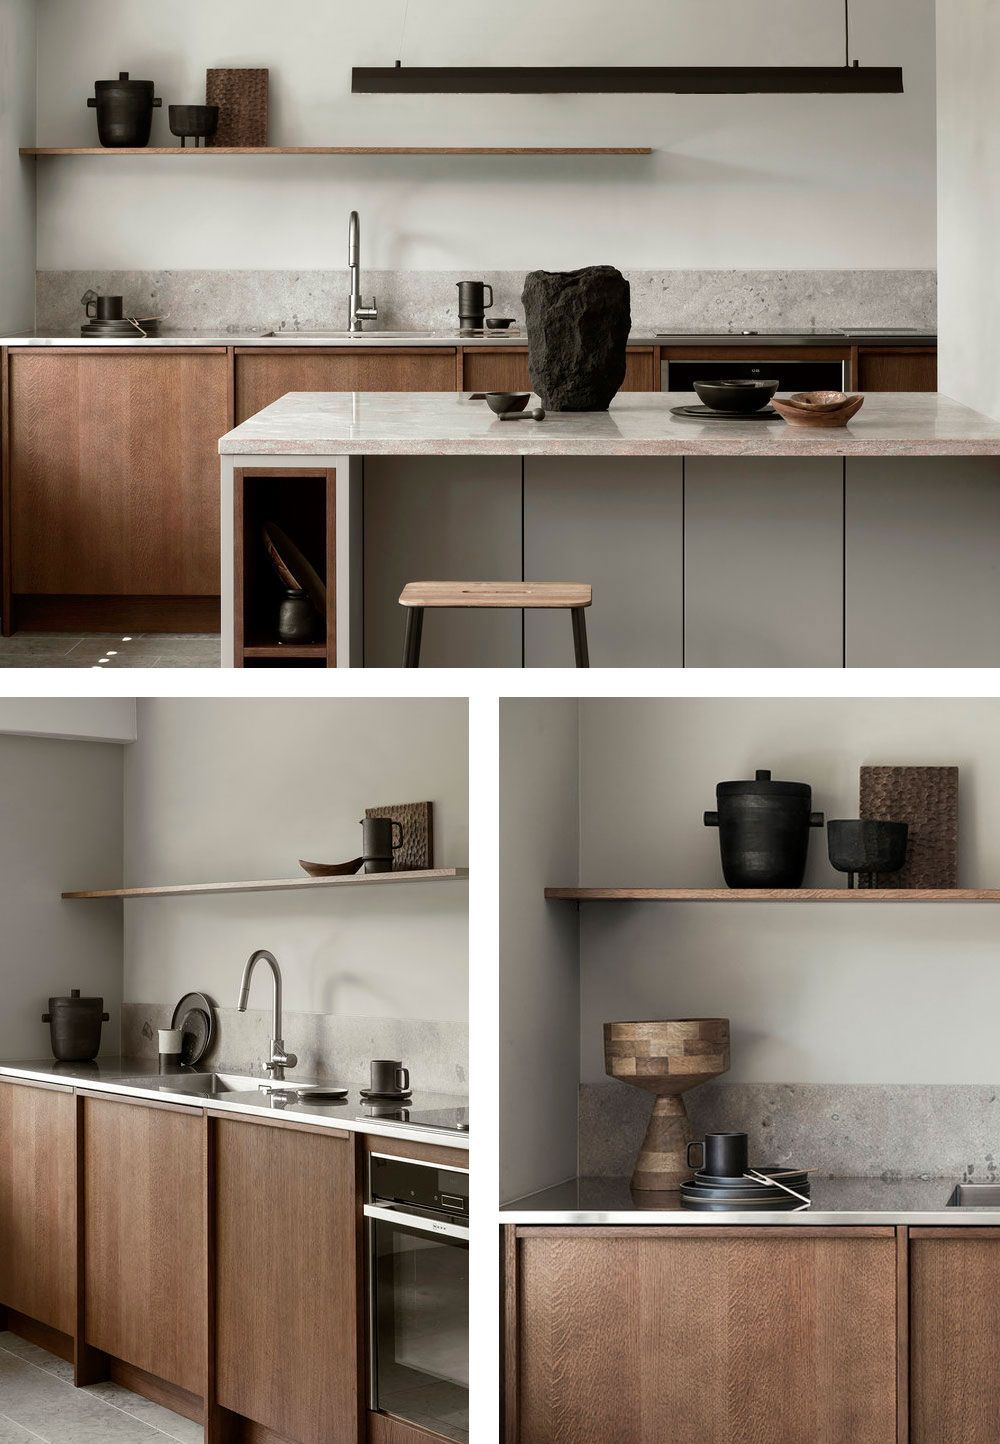 Photo of 9 Fantastic Kitchens with Wooden Cabinets Done Right #greykitcheninterior 5 Fant…